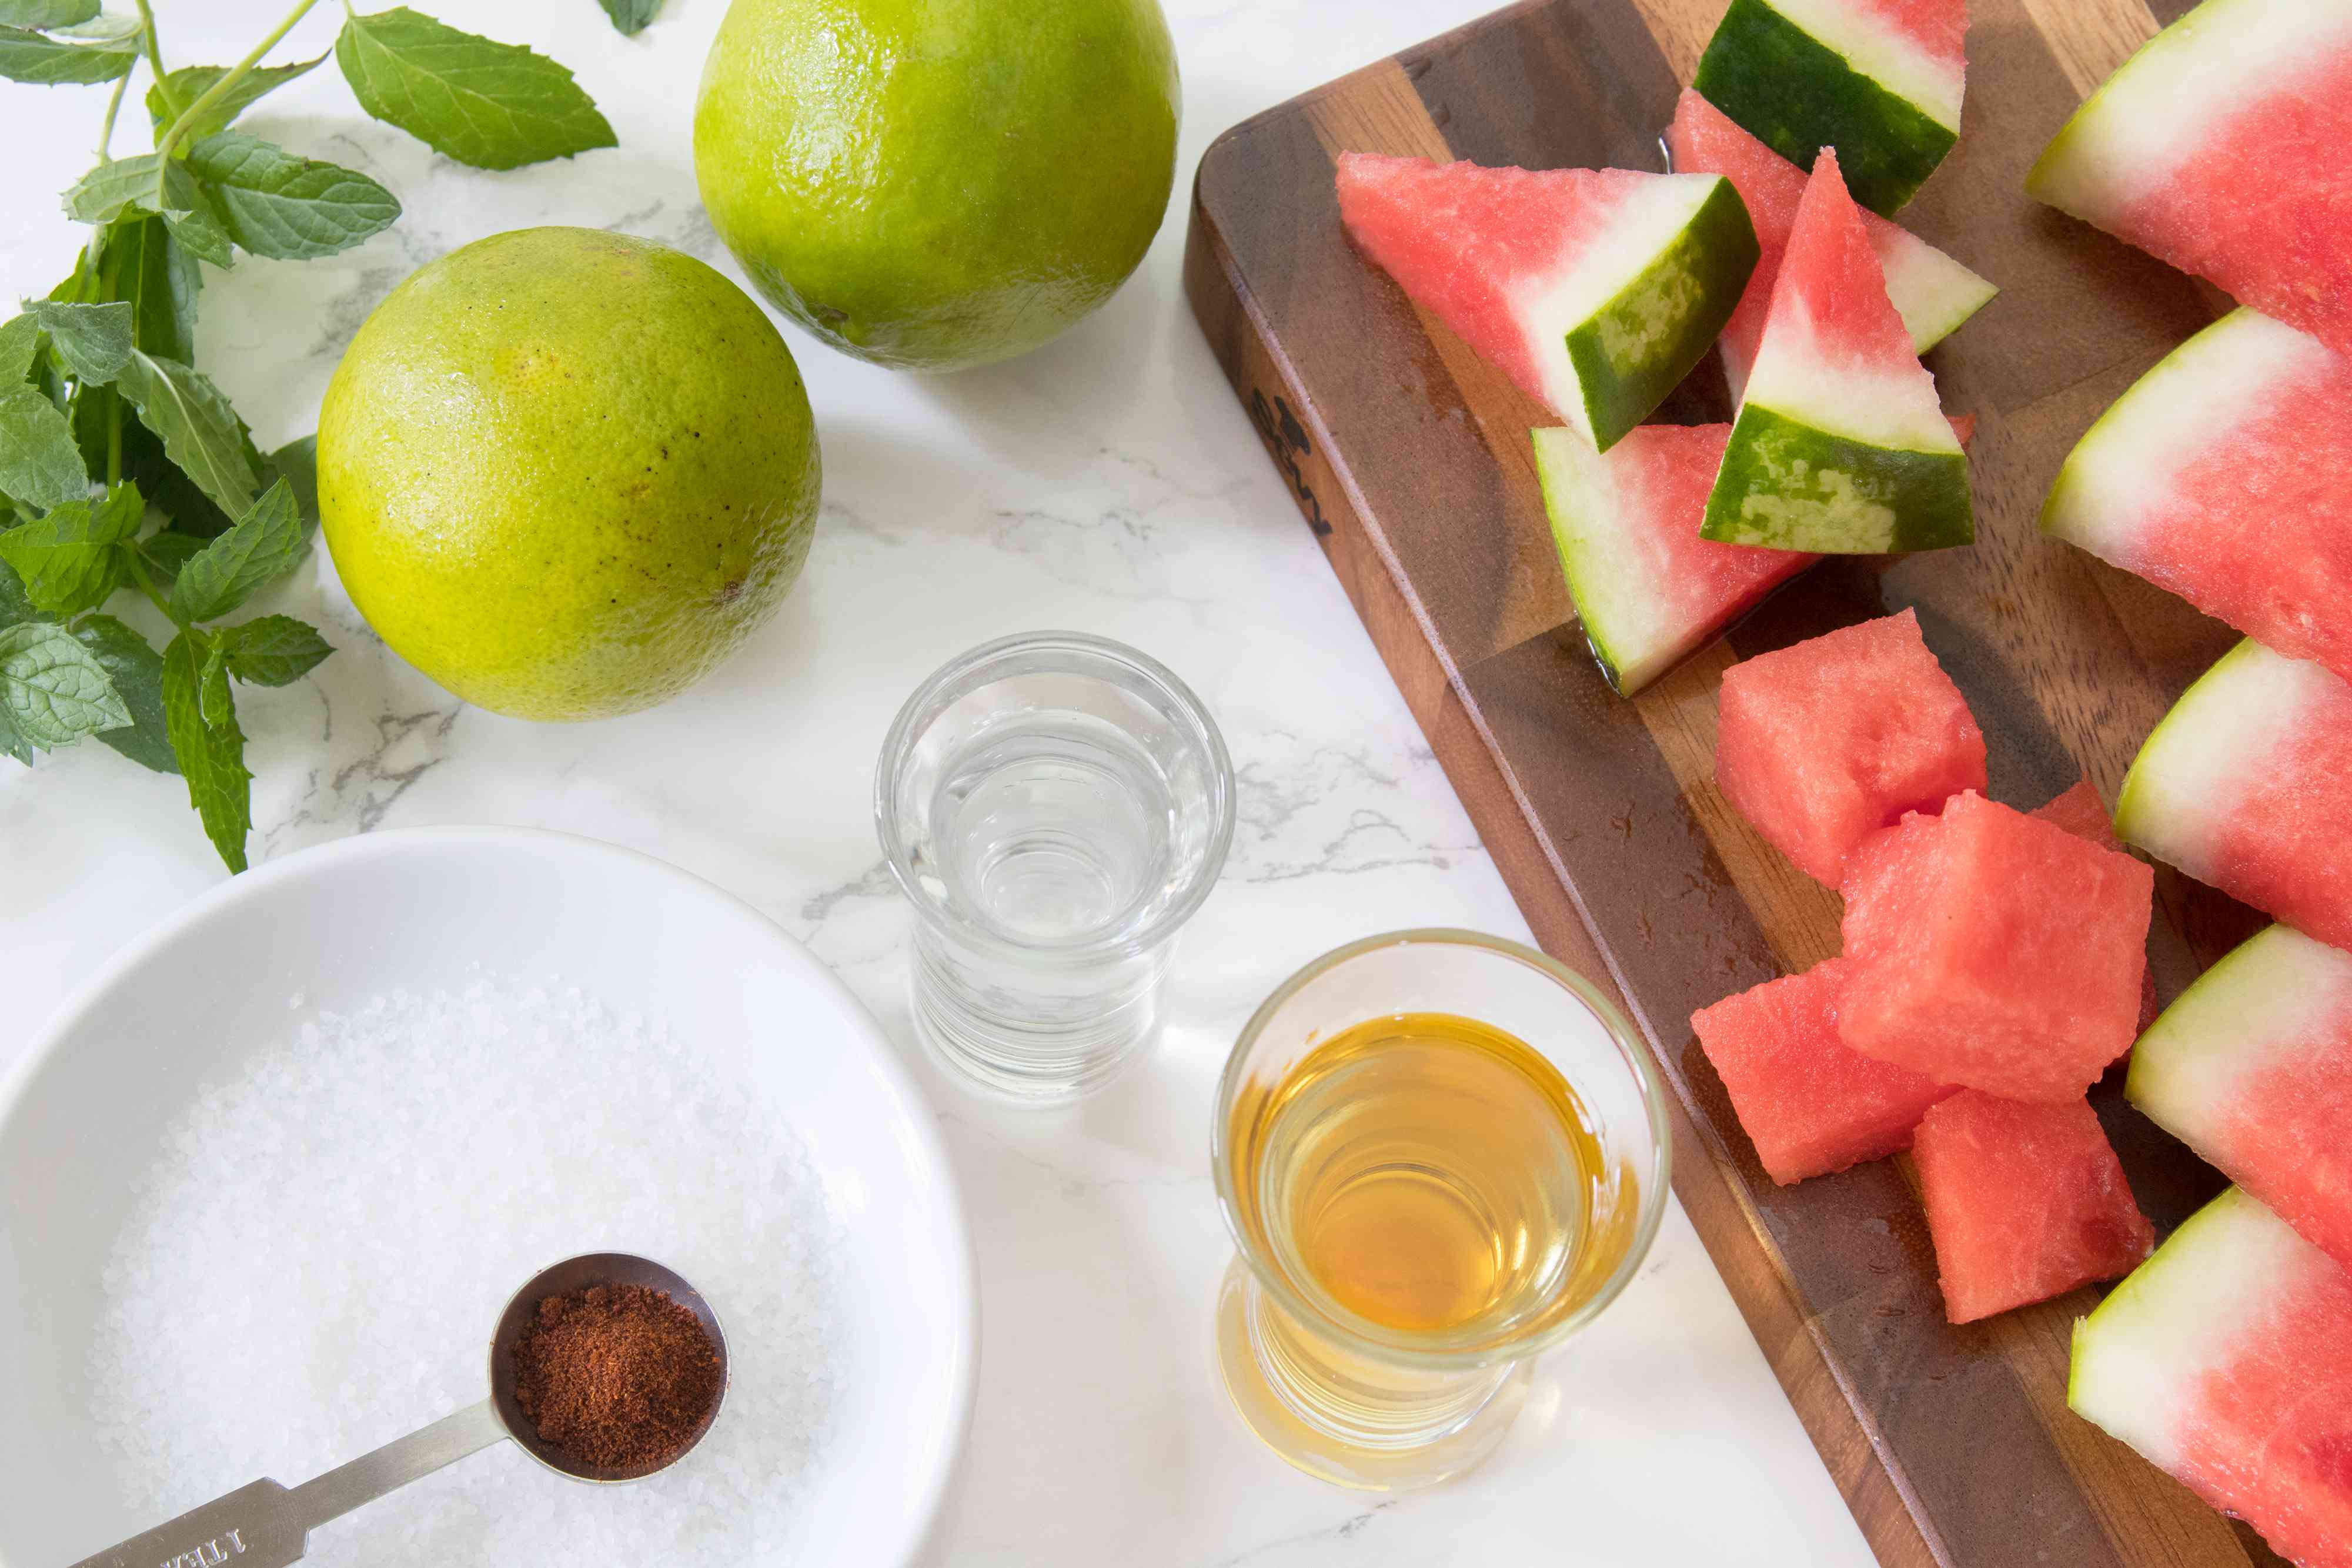 Ingredients for a Watermelon Margarita